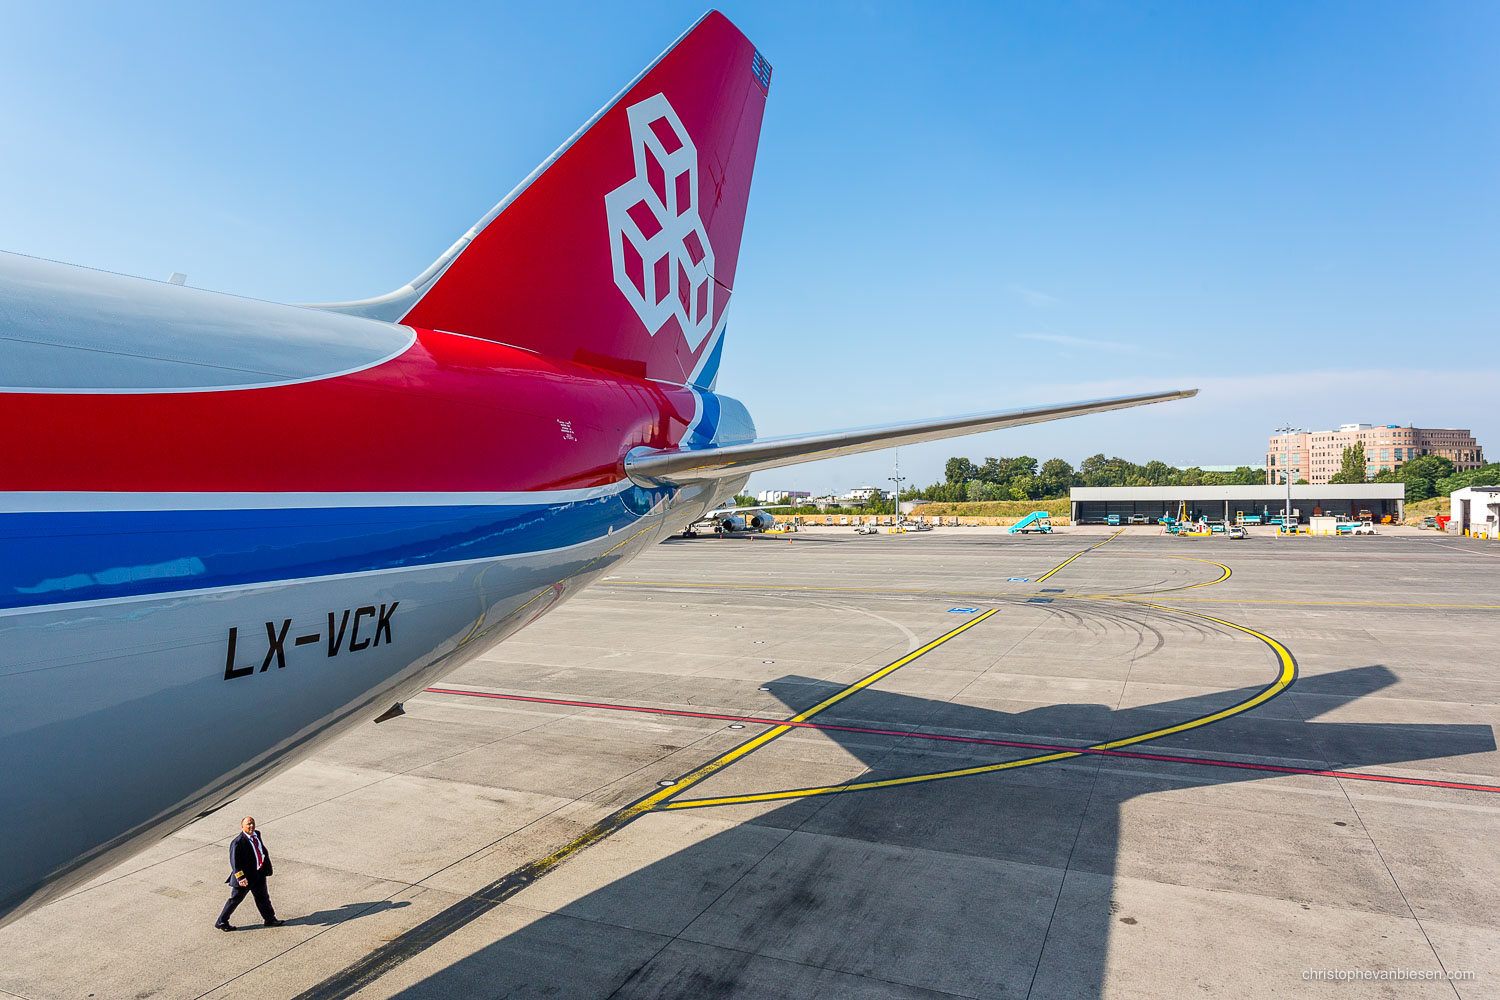 Work with me - Commission Work - Boeing 747 of Luxembourg's Cargolux fleet - Pilot - Photography by Christophe Van Biesen - Luxembourg Landscape and Travel Photographer